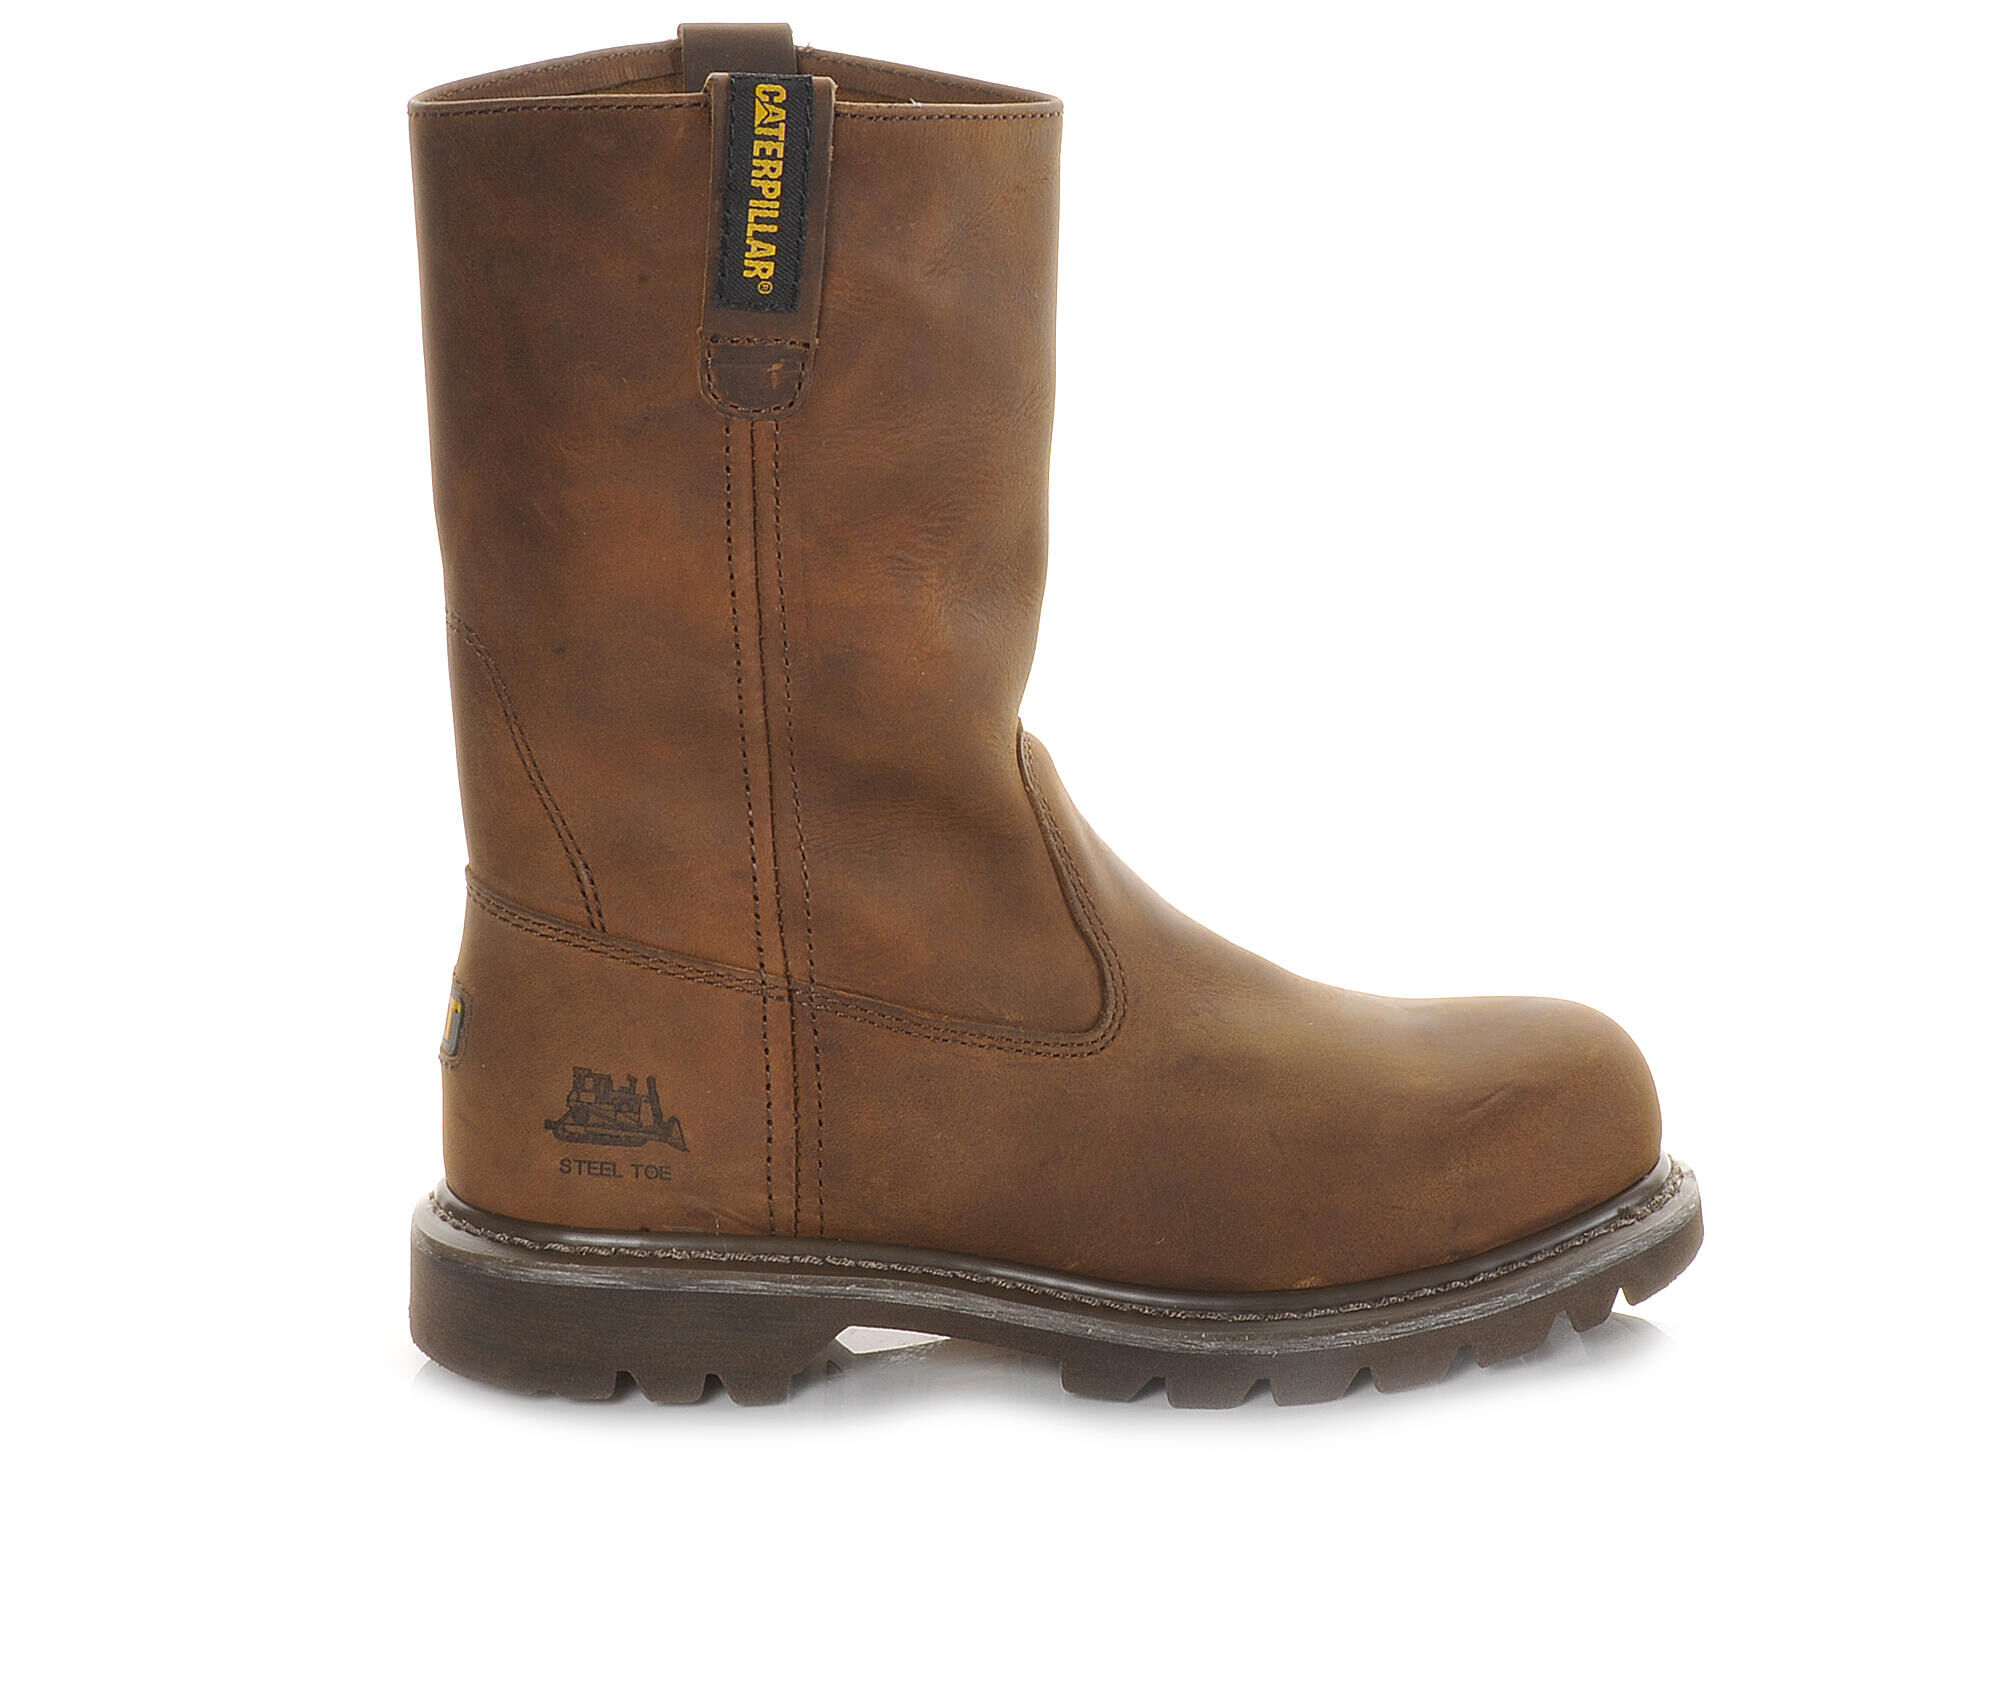 cheapest latest style Women's Caterpillar Revolver Steel Toe Work Boots Brown